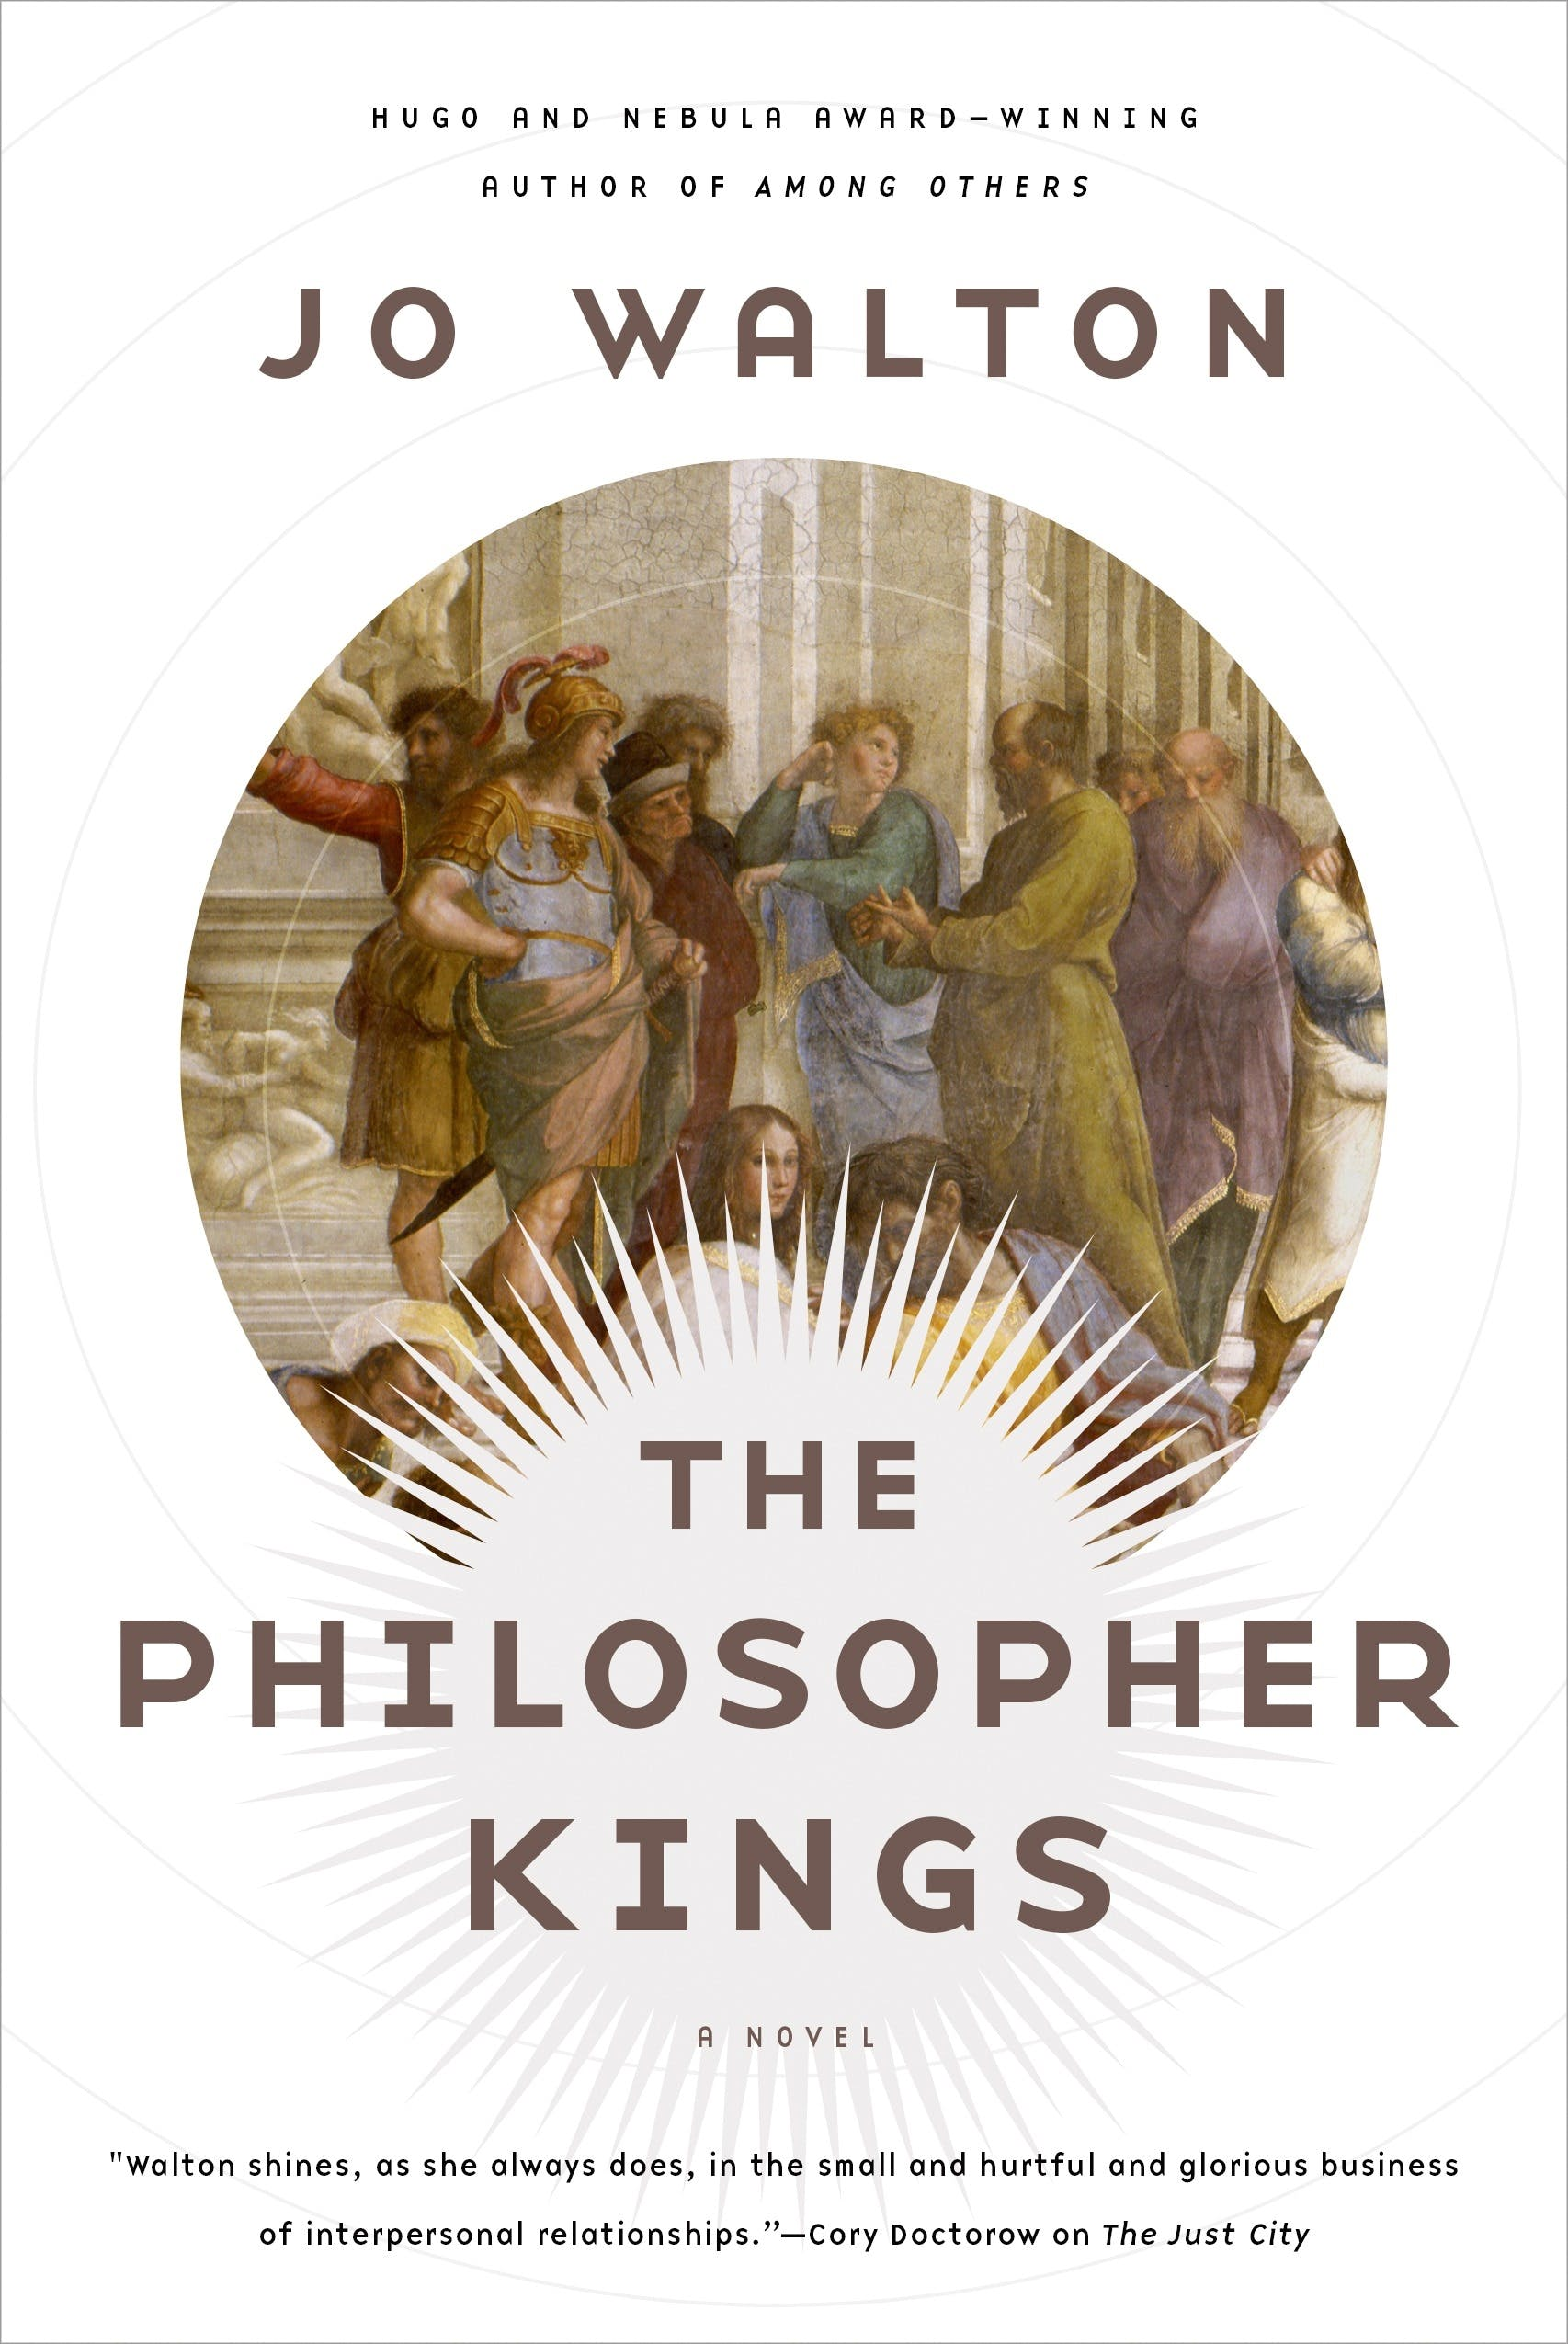 Image of The Philosopher Kings